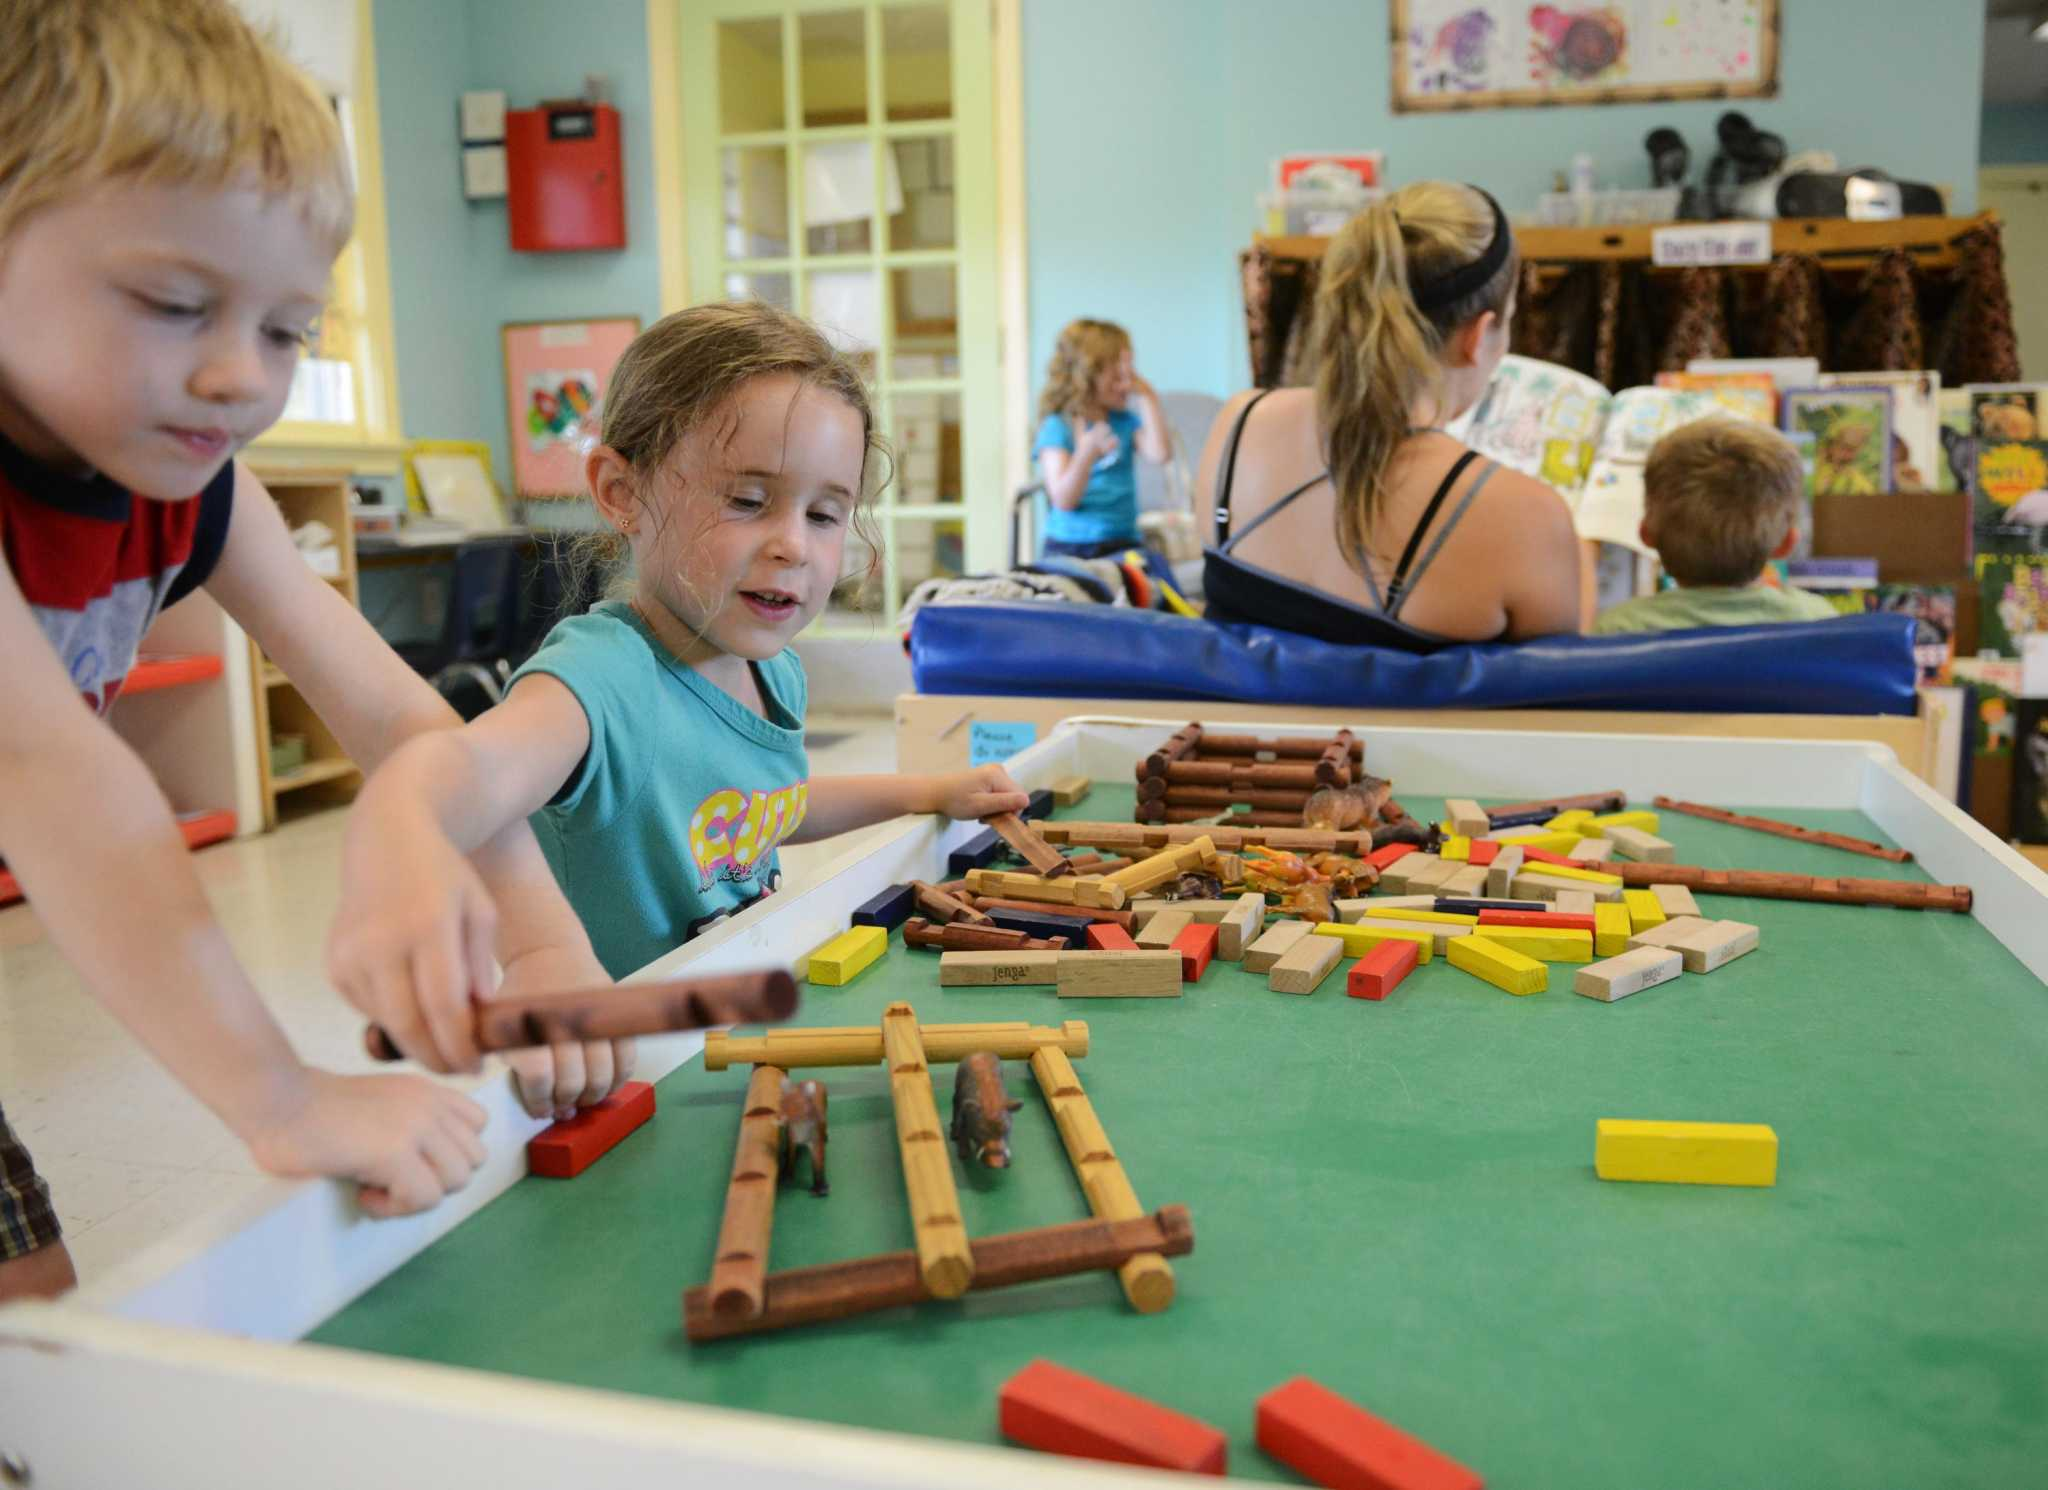 Day Care Bill Opposed As Expensive